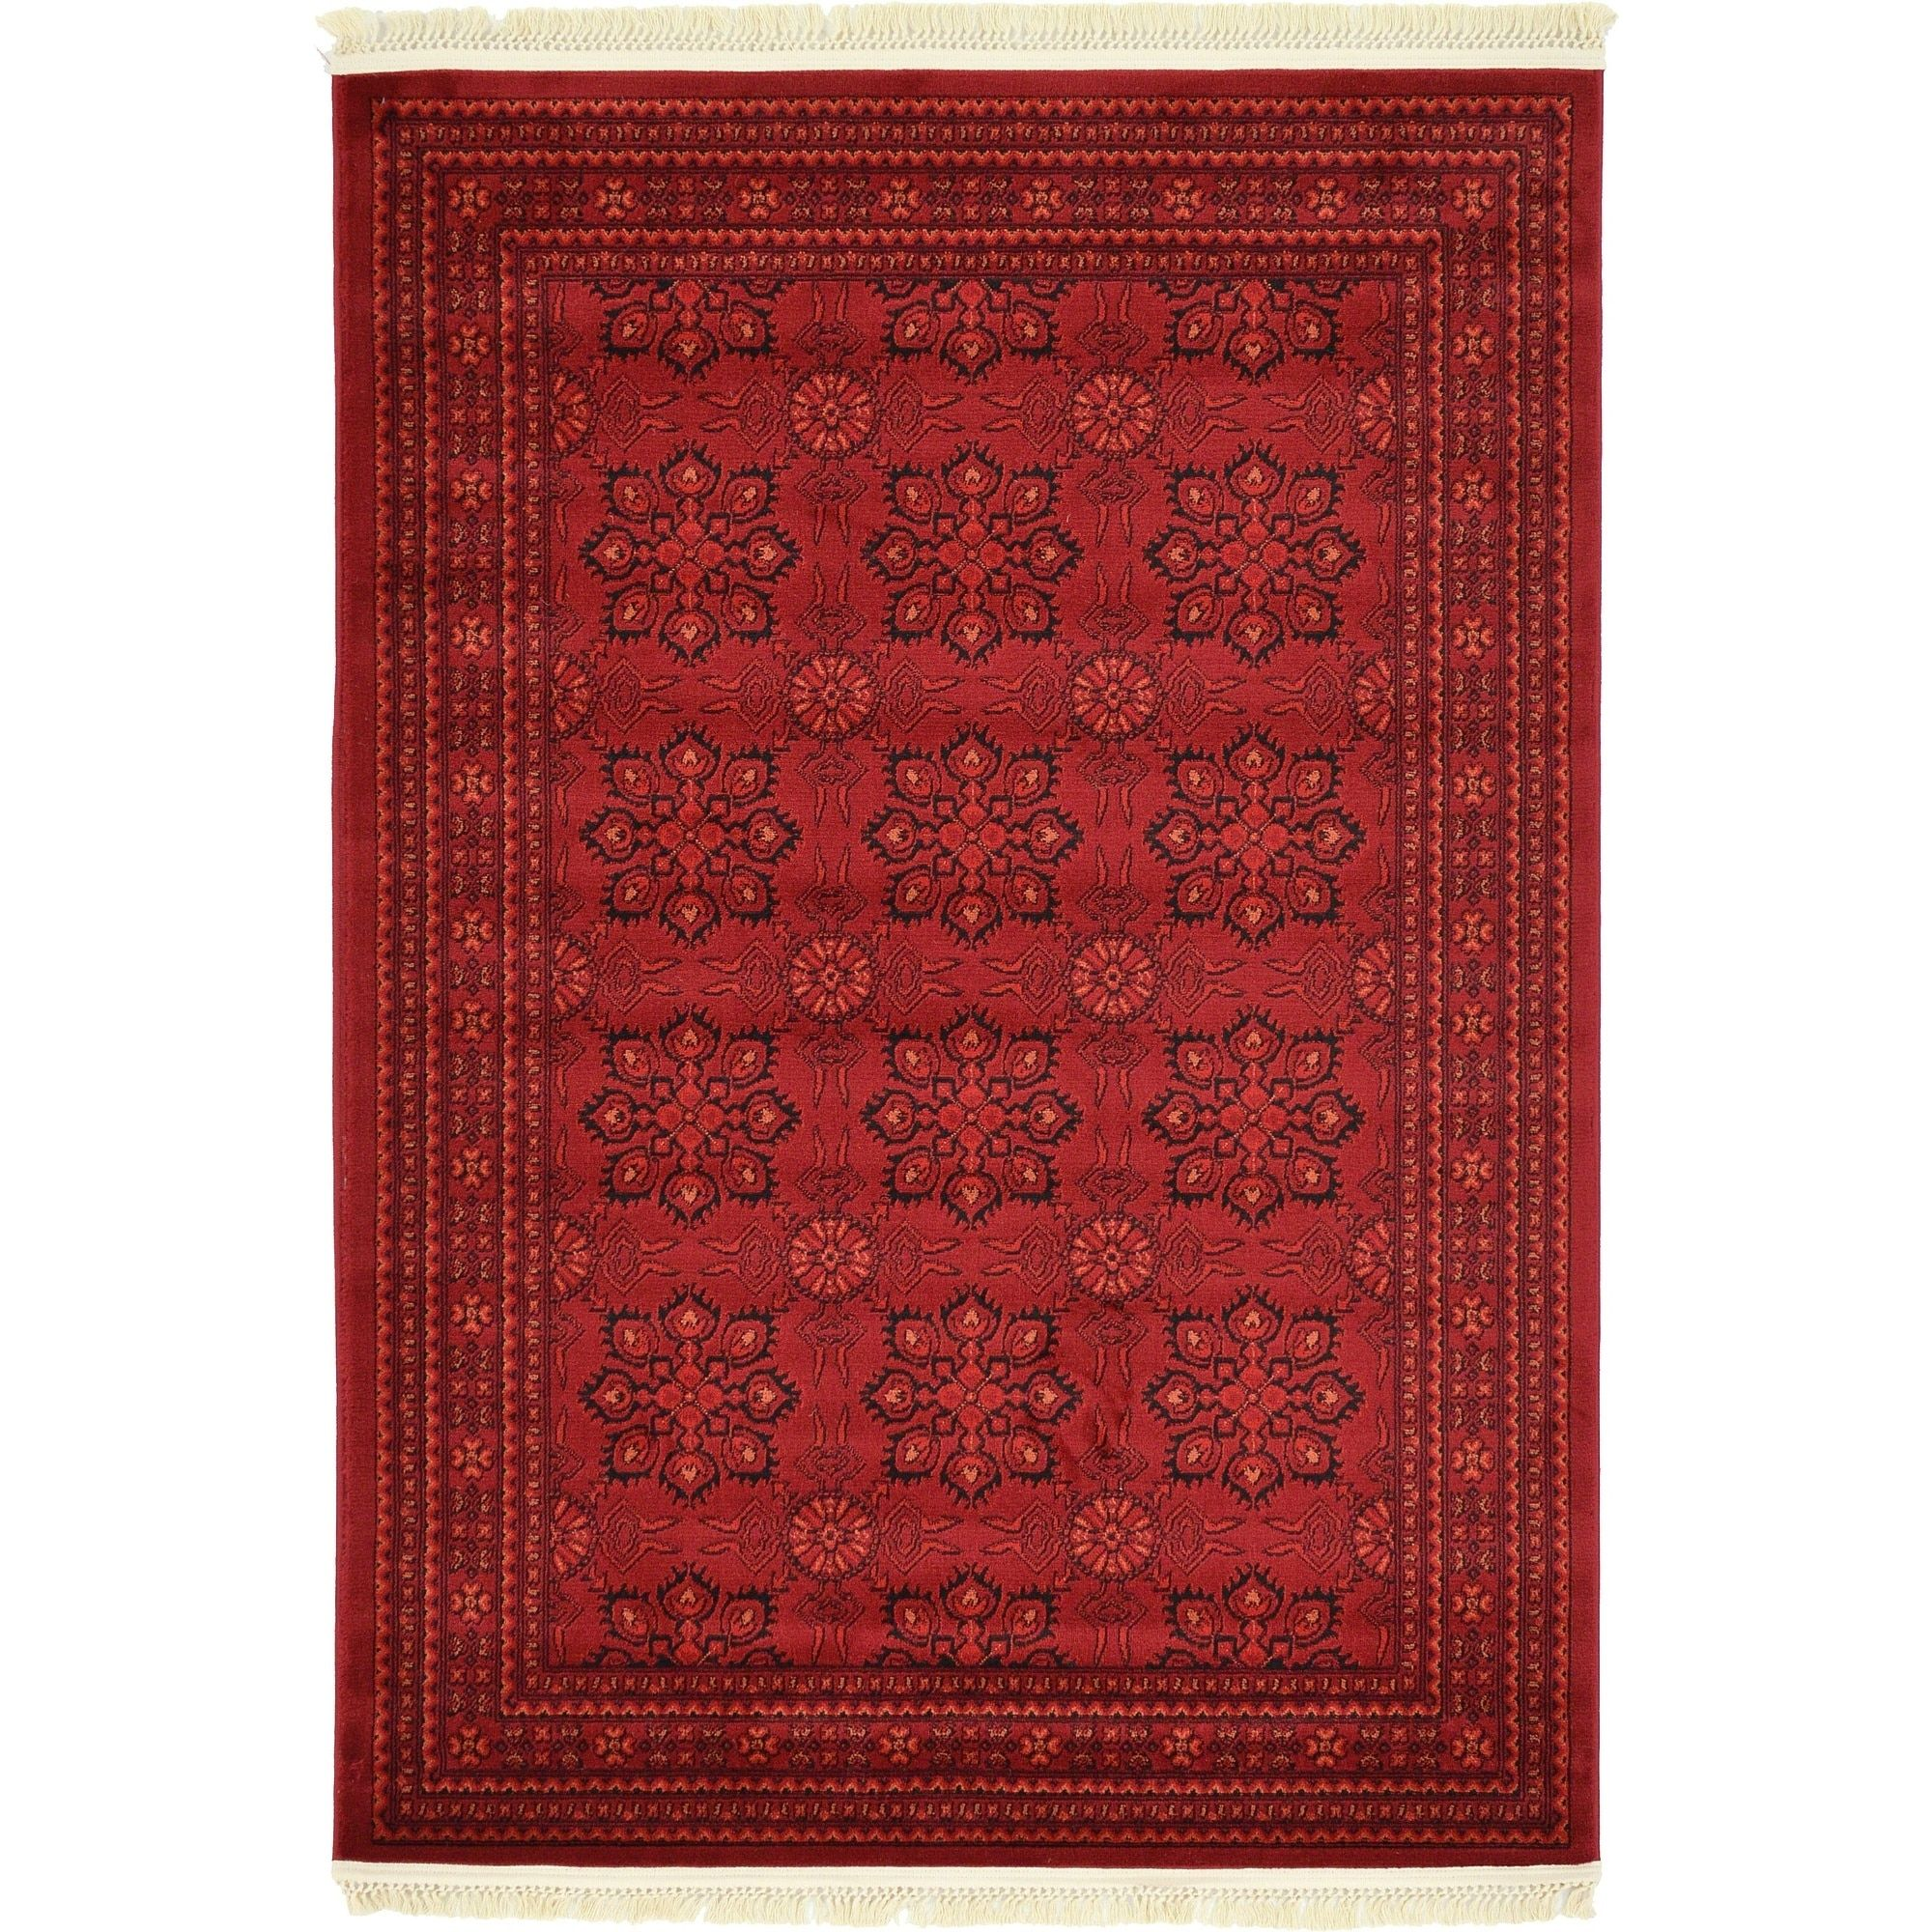 Unique Loom Bokhara Red Rug